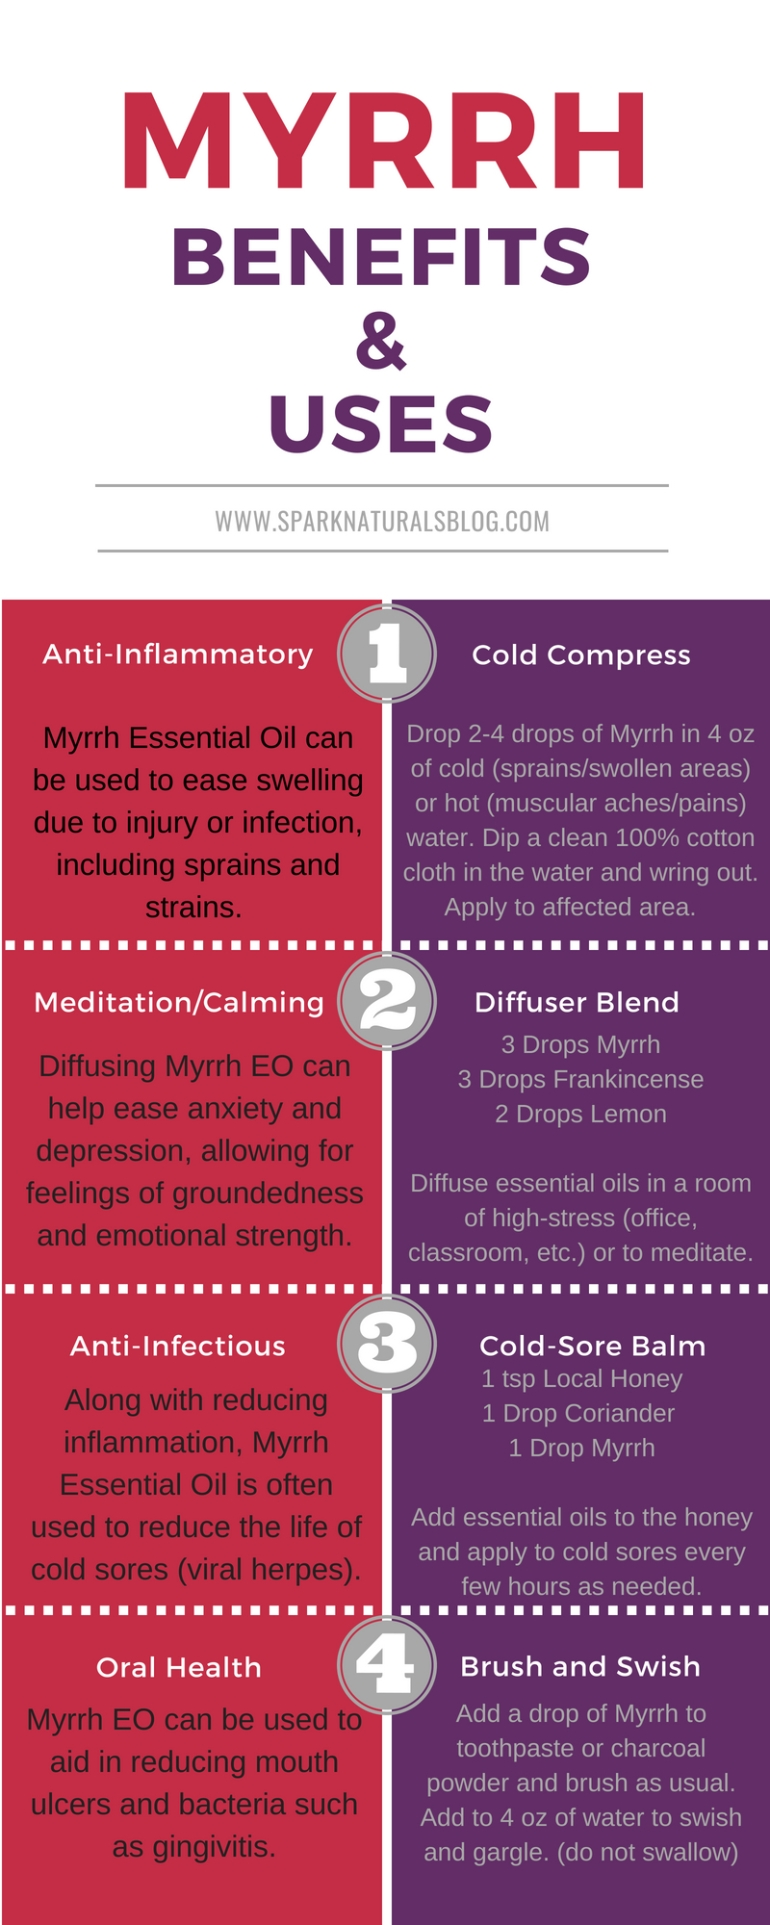 Myrrh Benefits & Uses